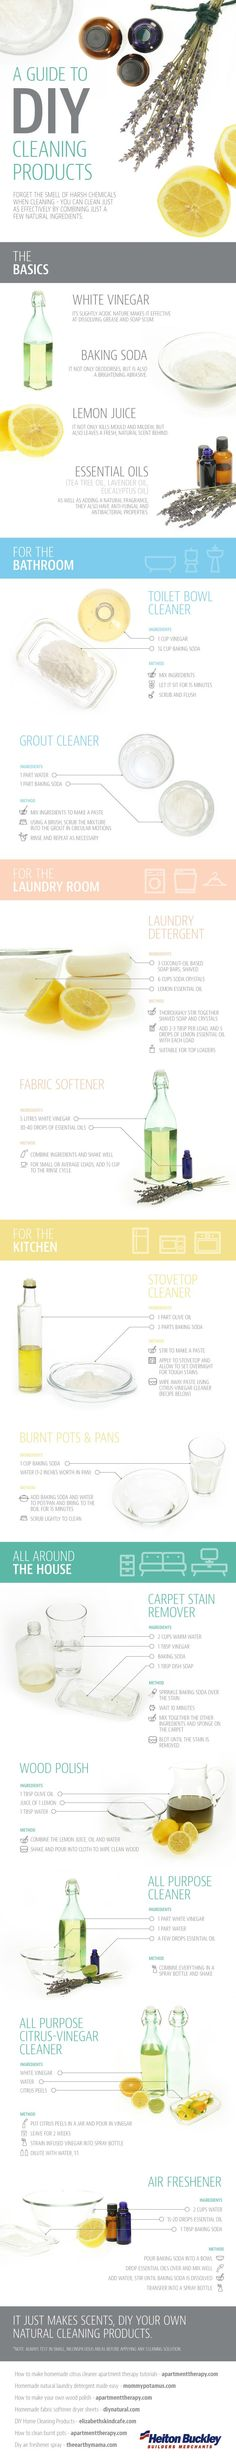 Basic Guide to Natural DIY Cleaning Products #infographic